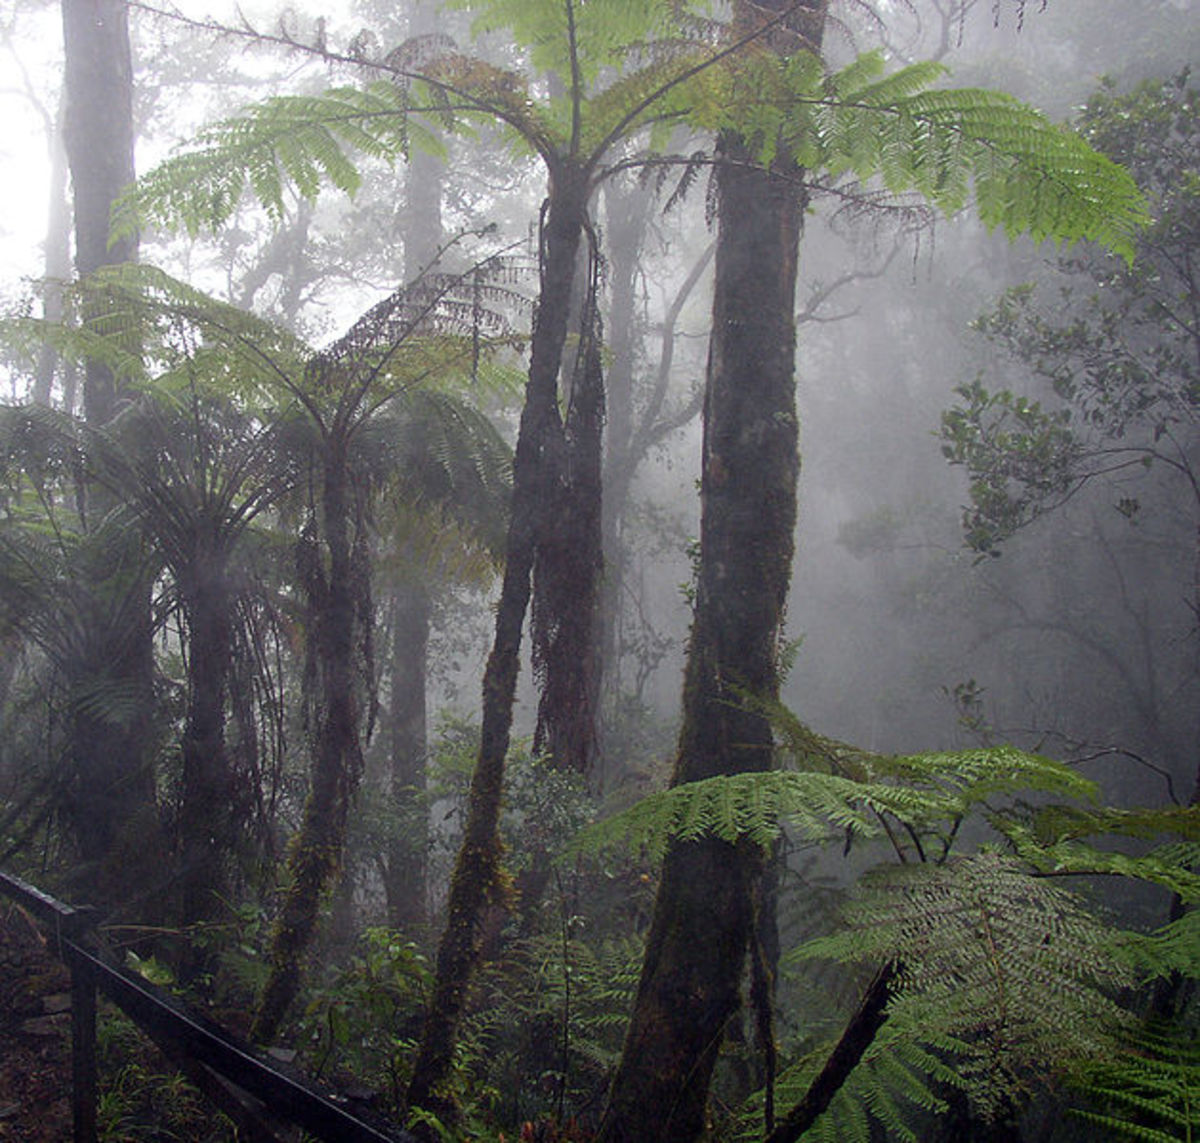 Recent research has shown that tropical jungles create their own rain. We need them to stay alive, so we can thrive.